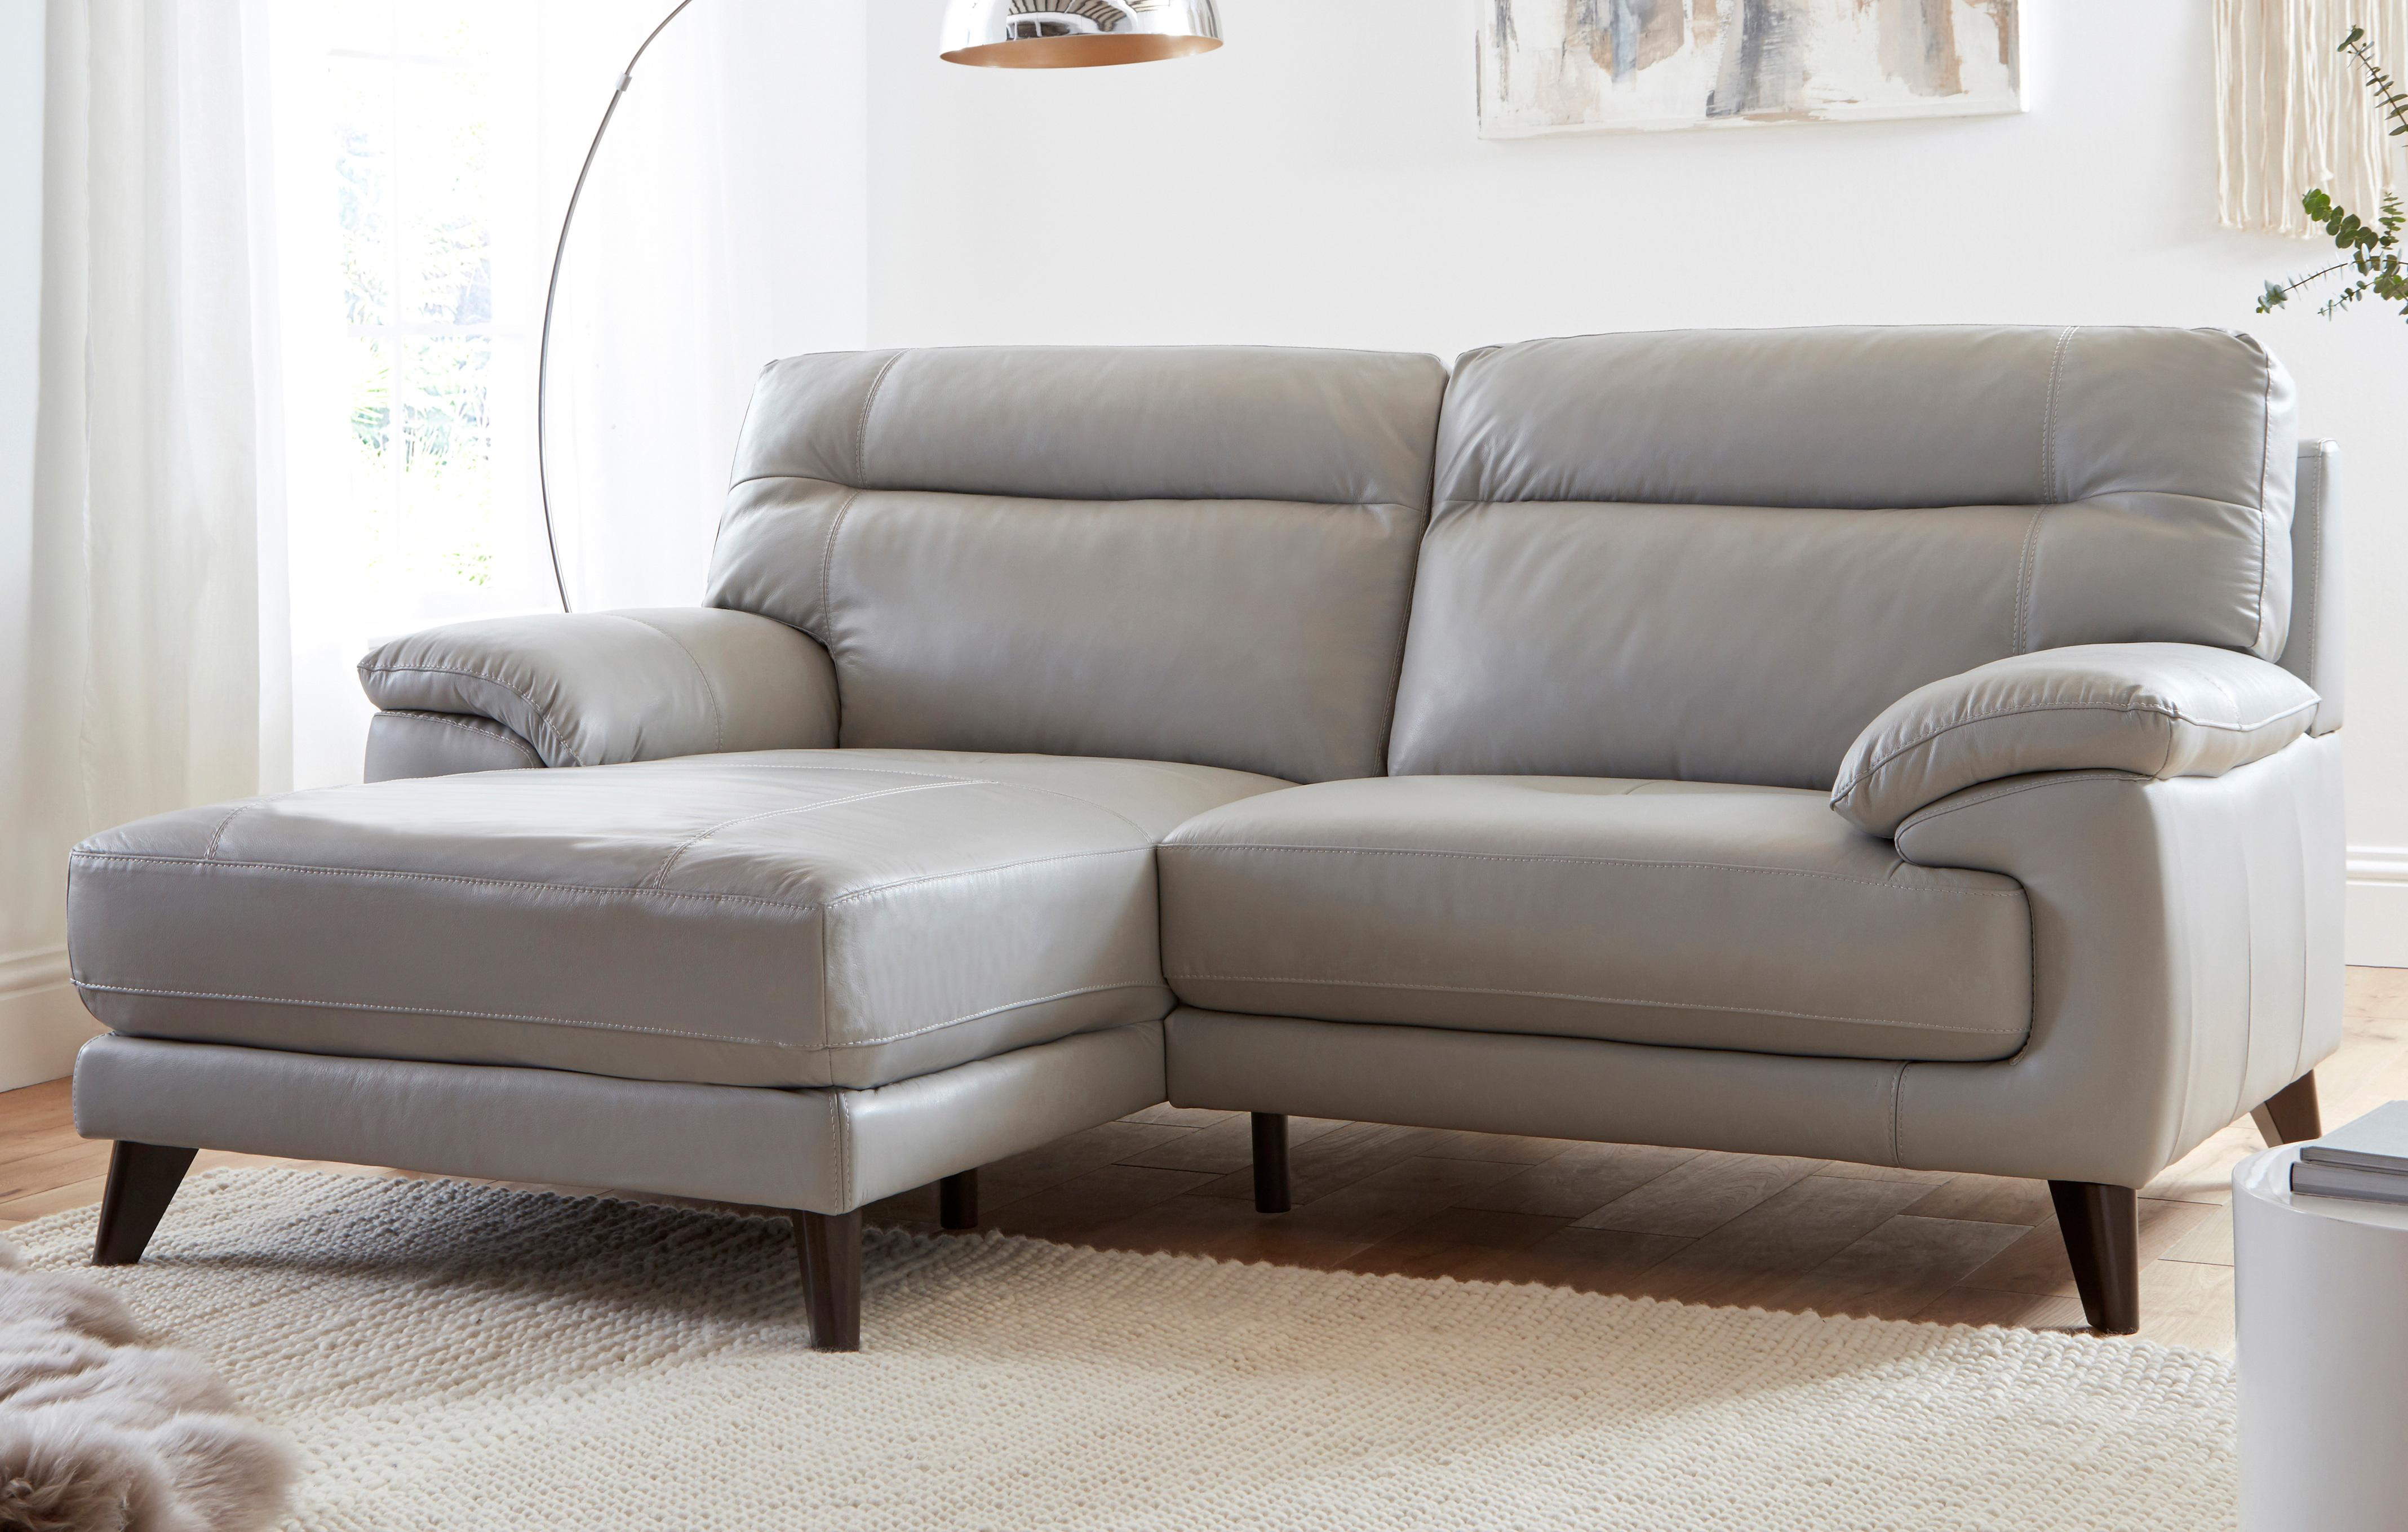 Settee End Of Bed Sofa Offers And Deals On A Range Of Sofas Ireland Dfs Ireland